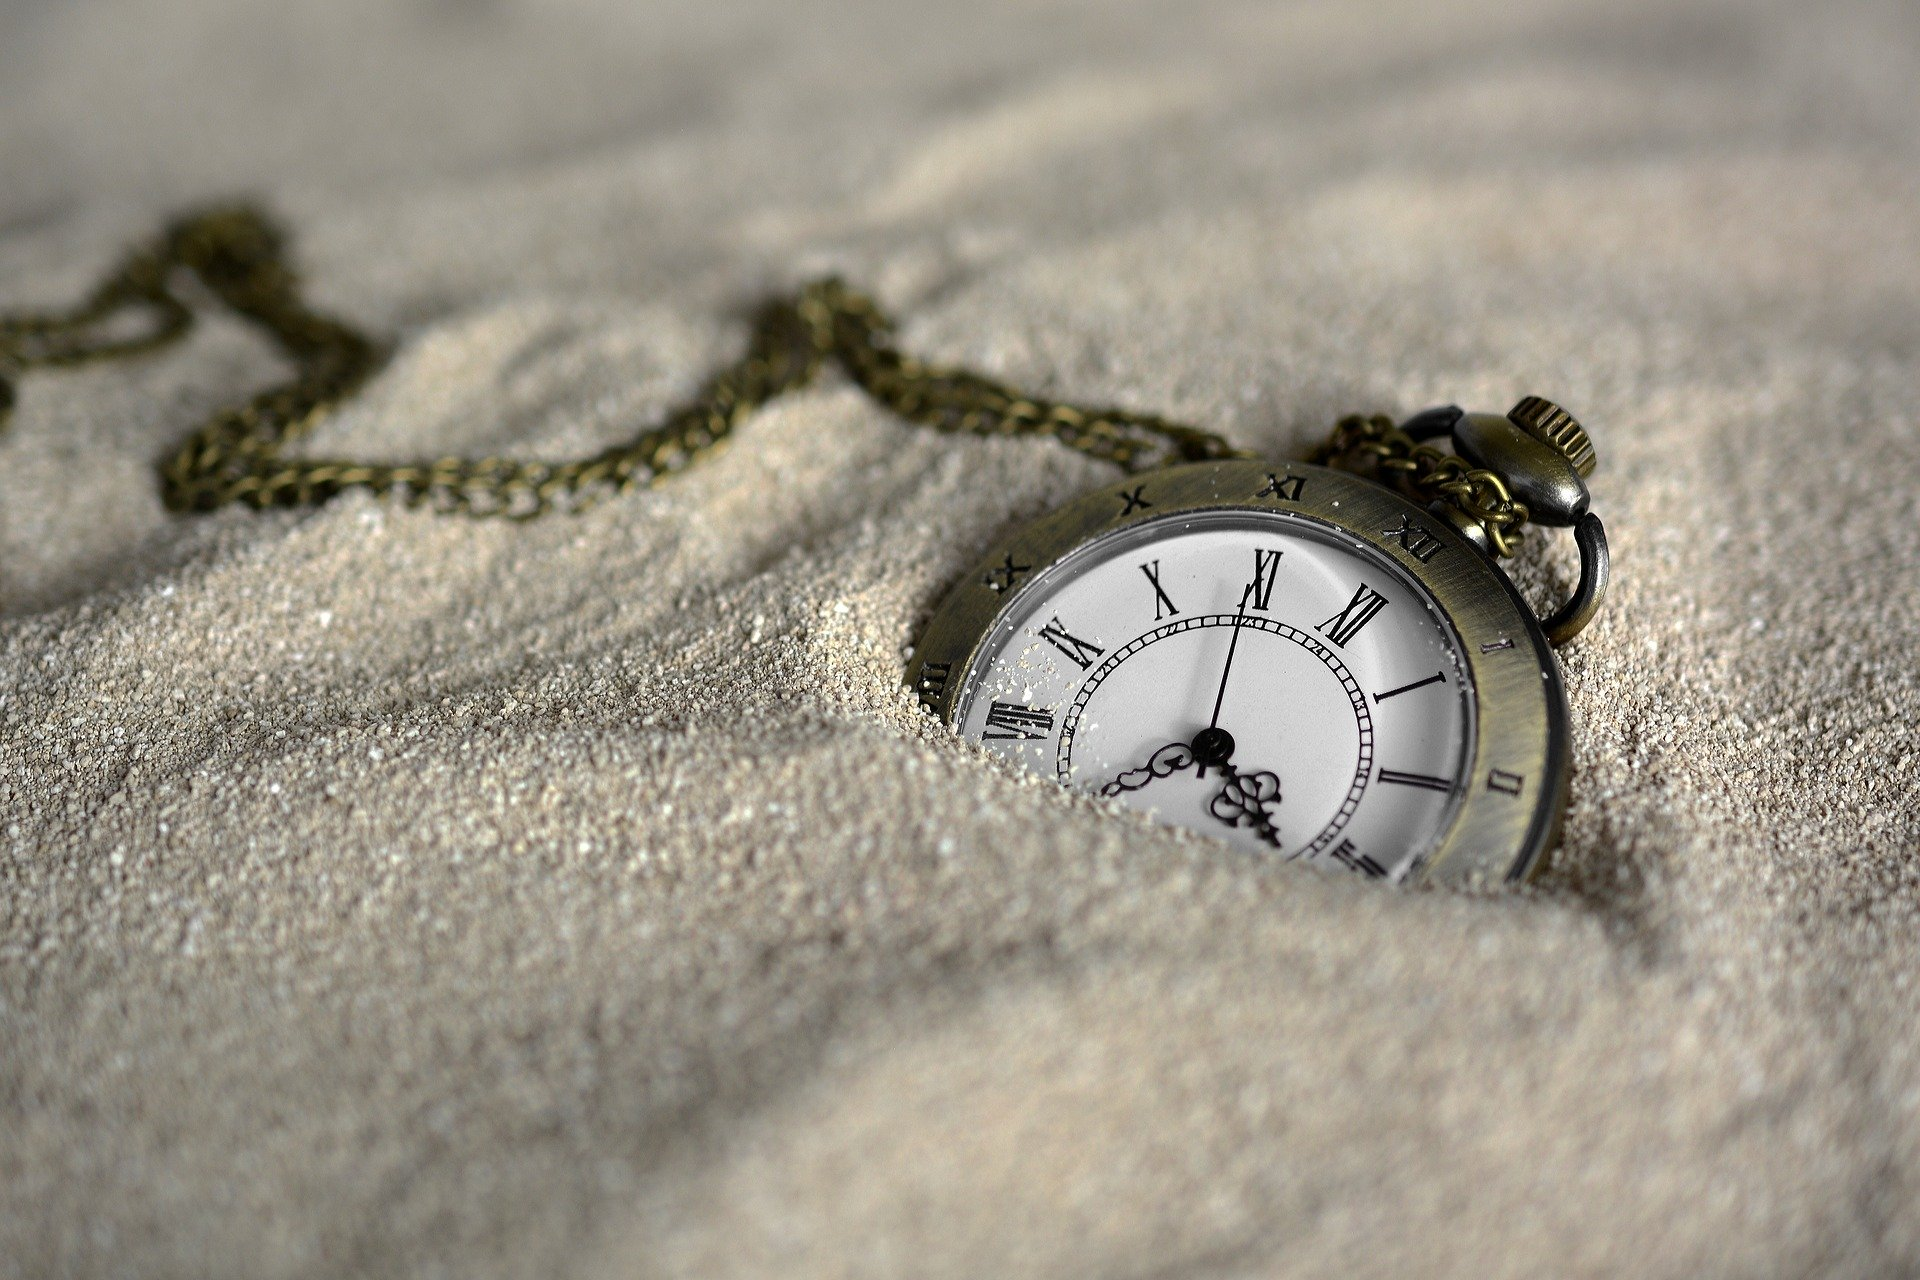 Pocket watch sinks into the sand